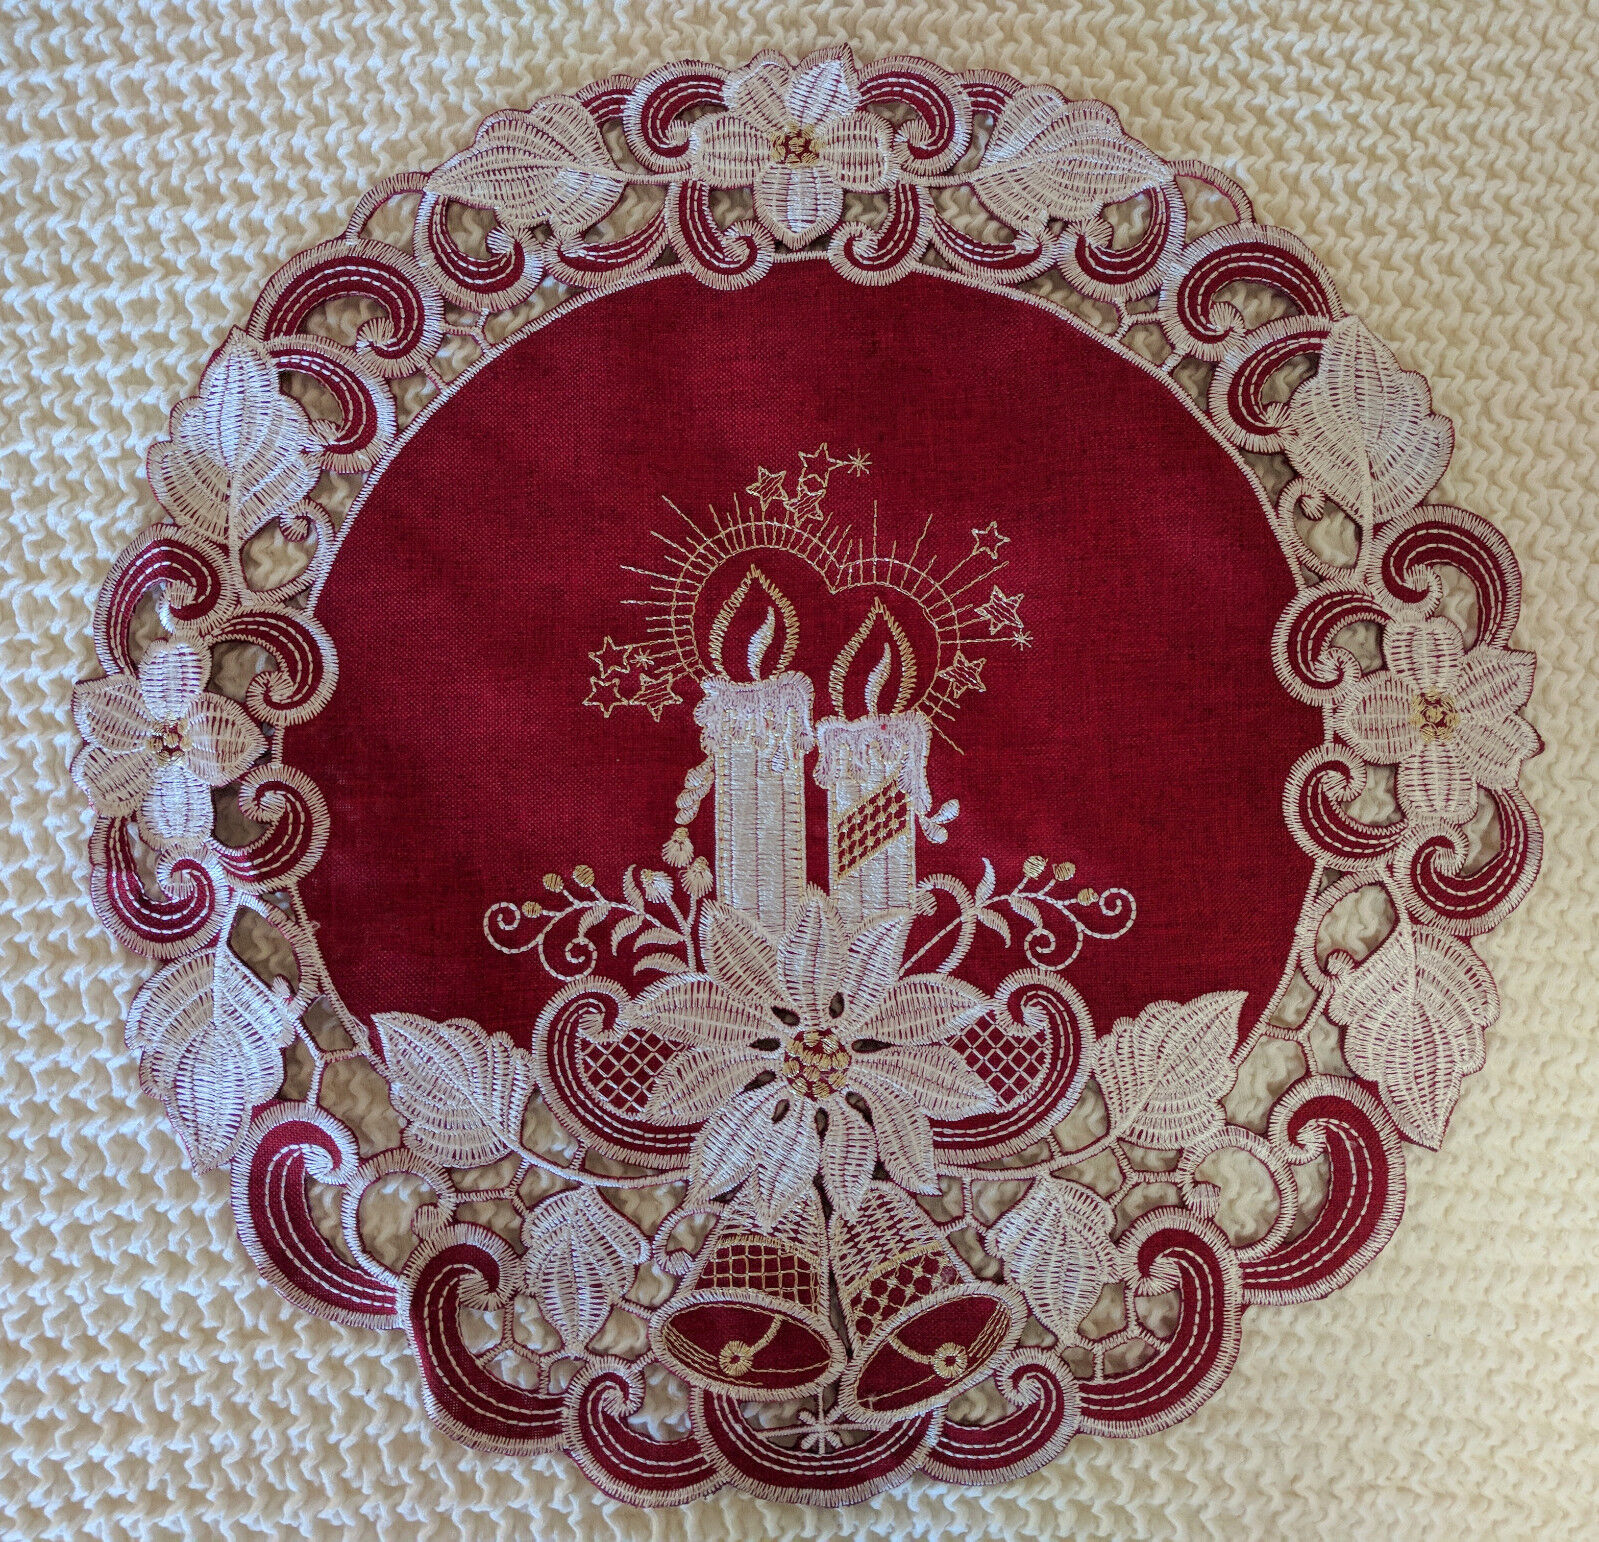 Dresser Scarf Red Poinsettia Embroidered Christmas Candle 54 Inch Runner Doily